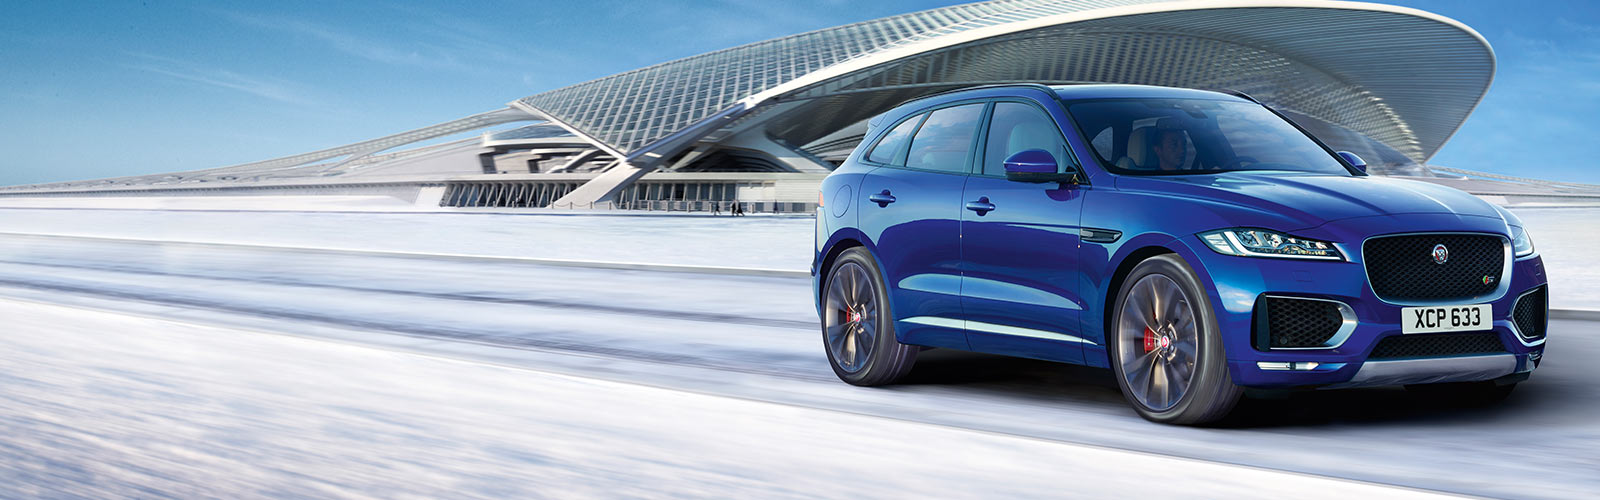 F-pace.